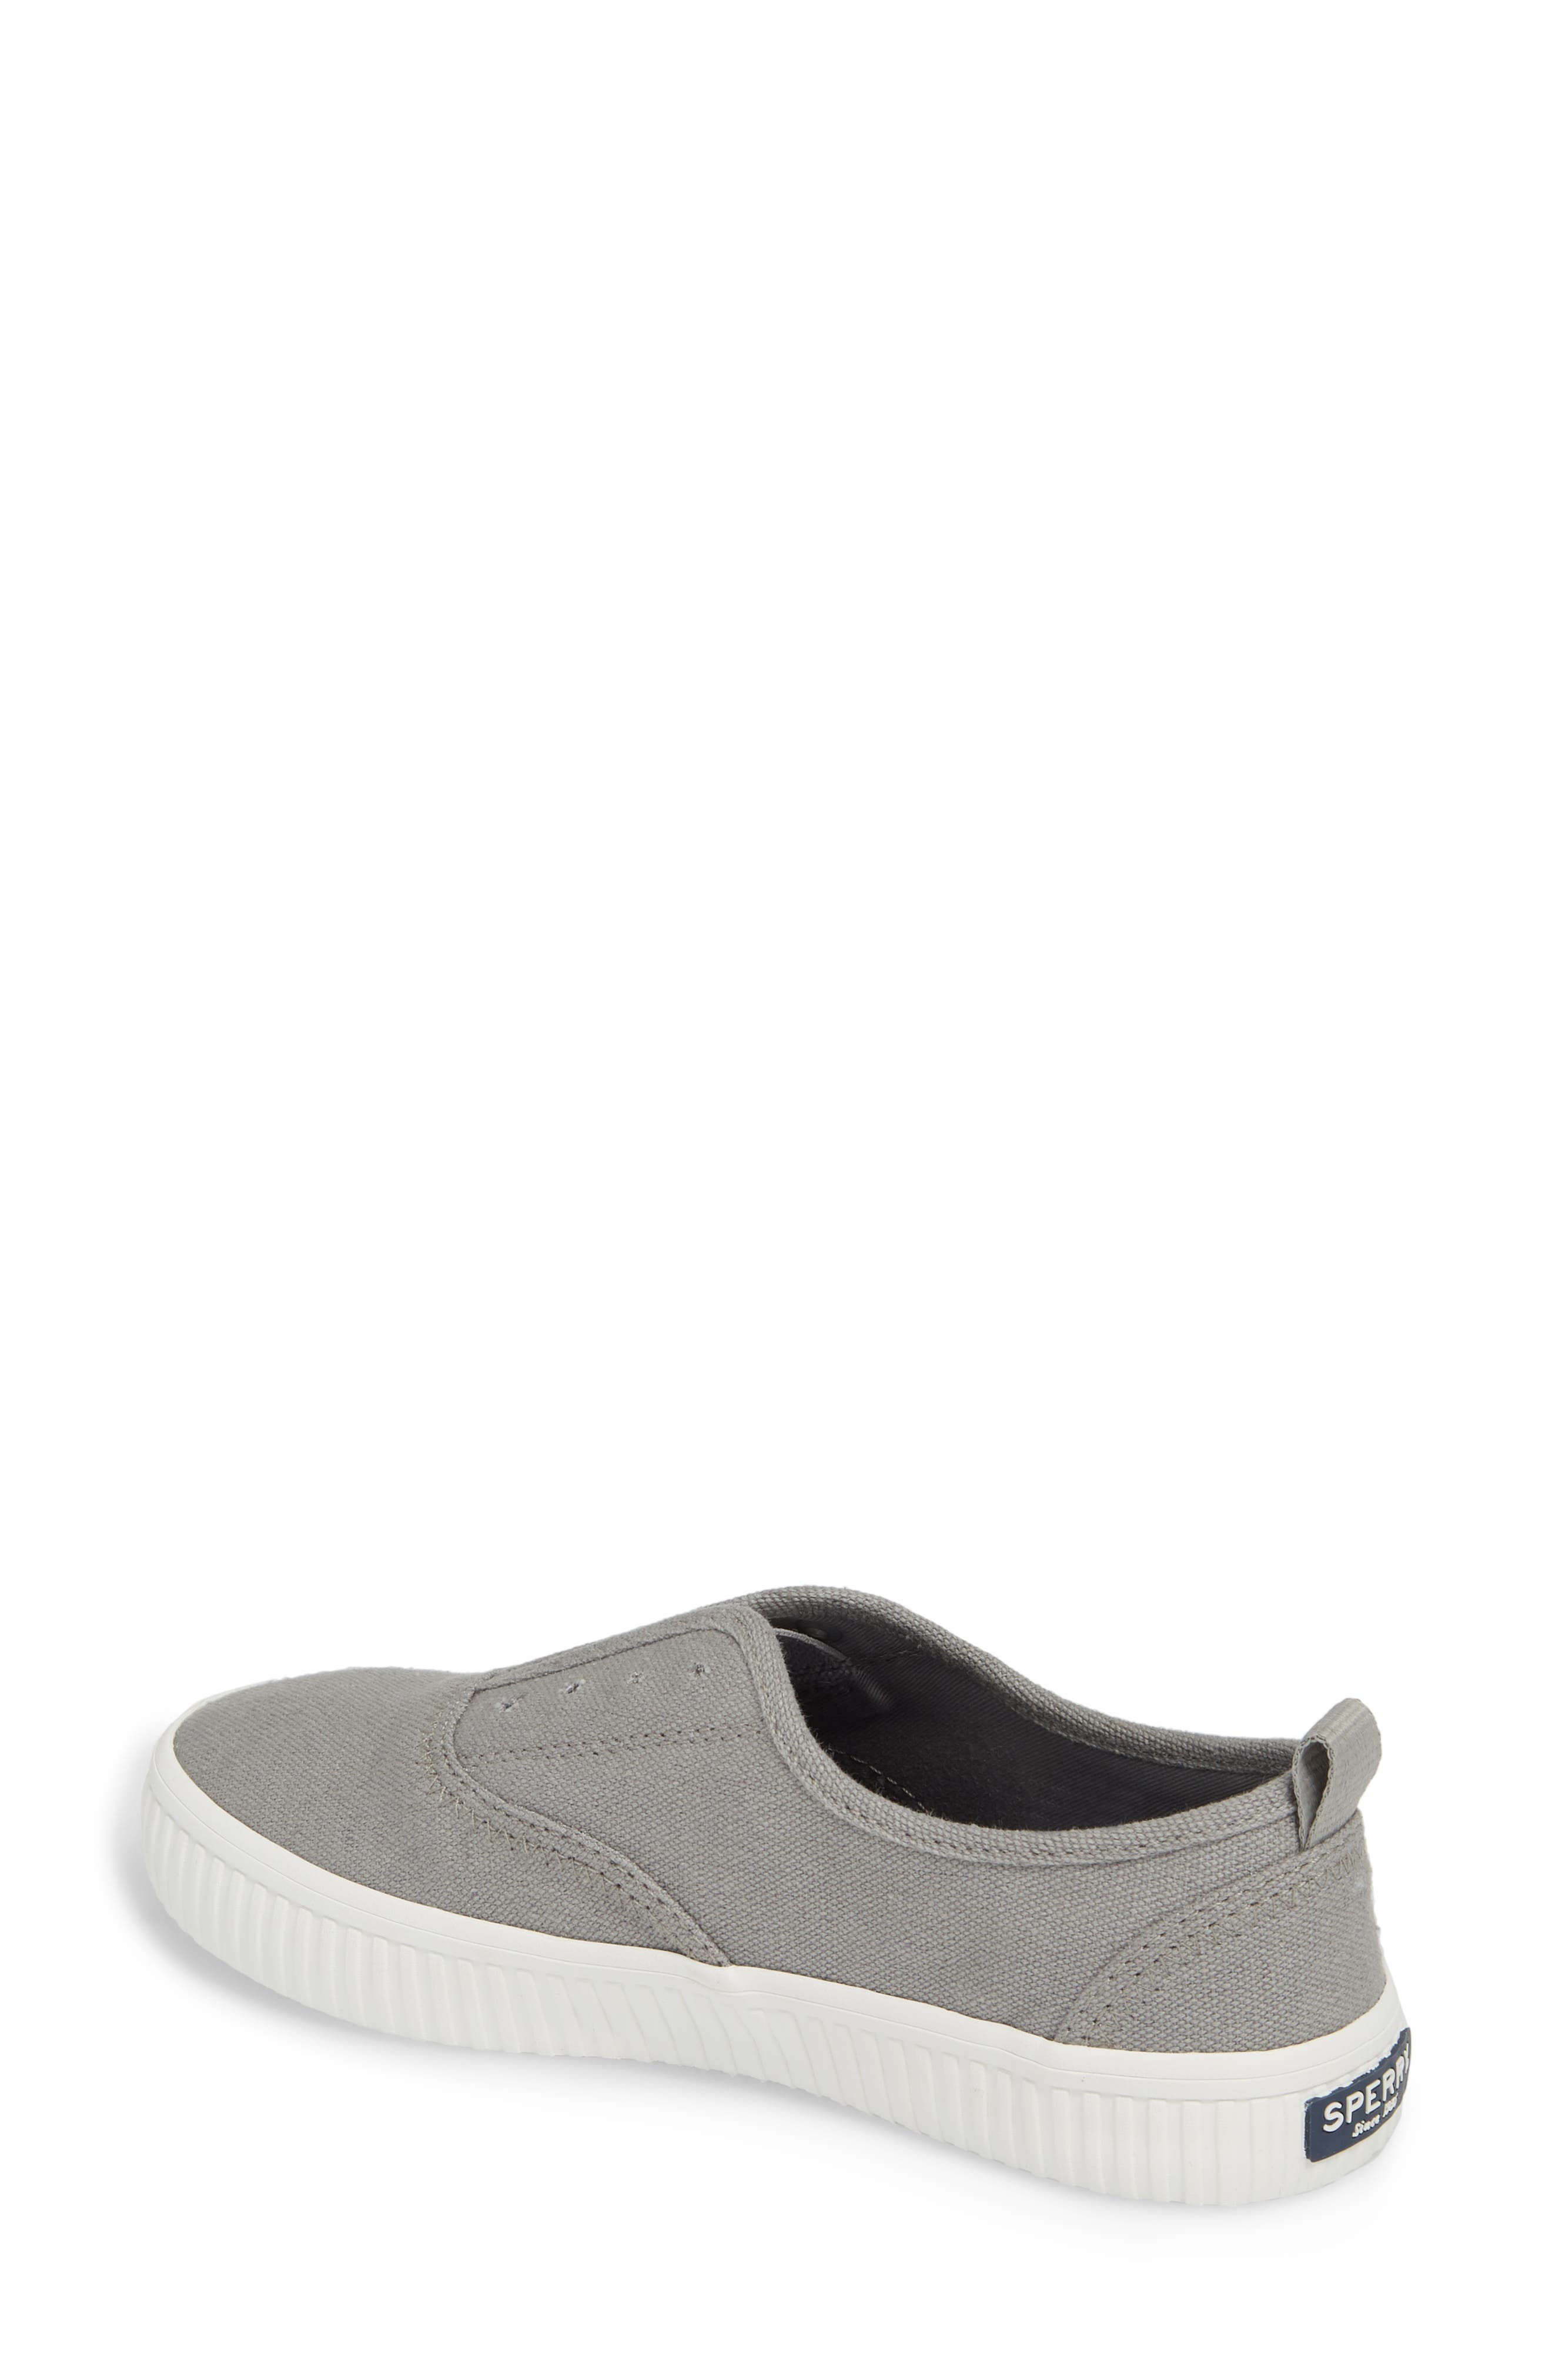 Crest Creeper CVO Slip-On Sneaker,                             Alternate thumbnail 2, color,                             020